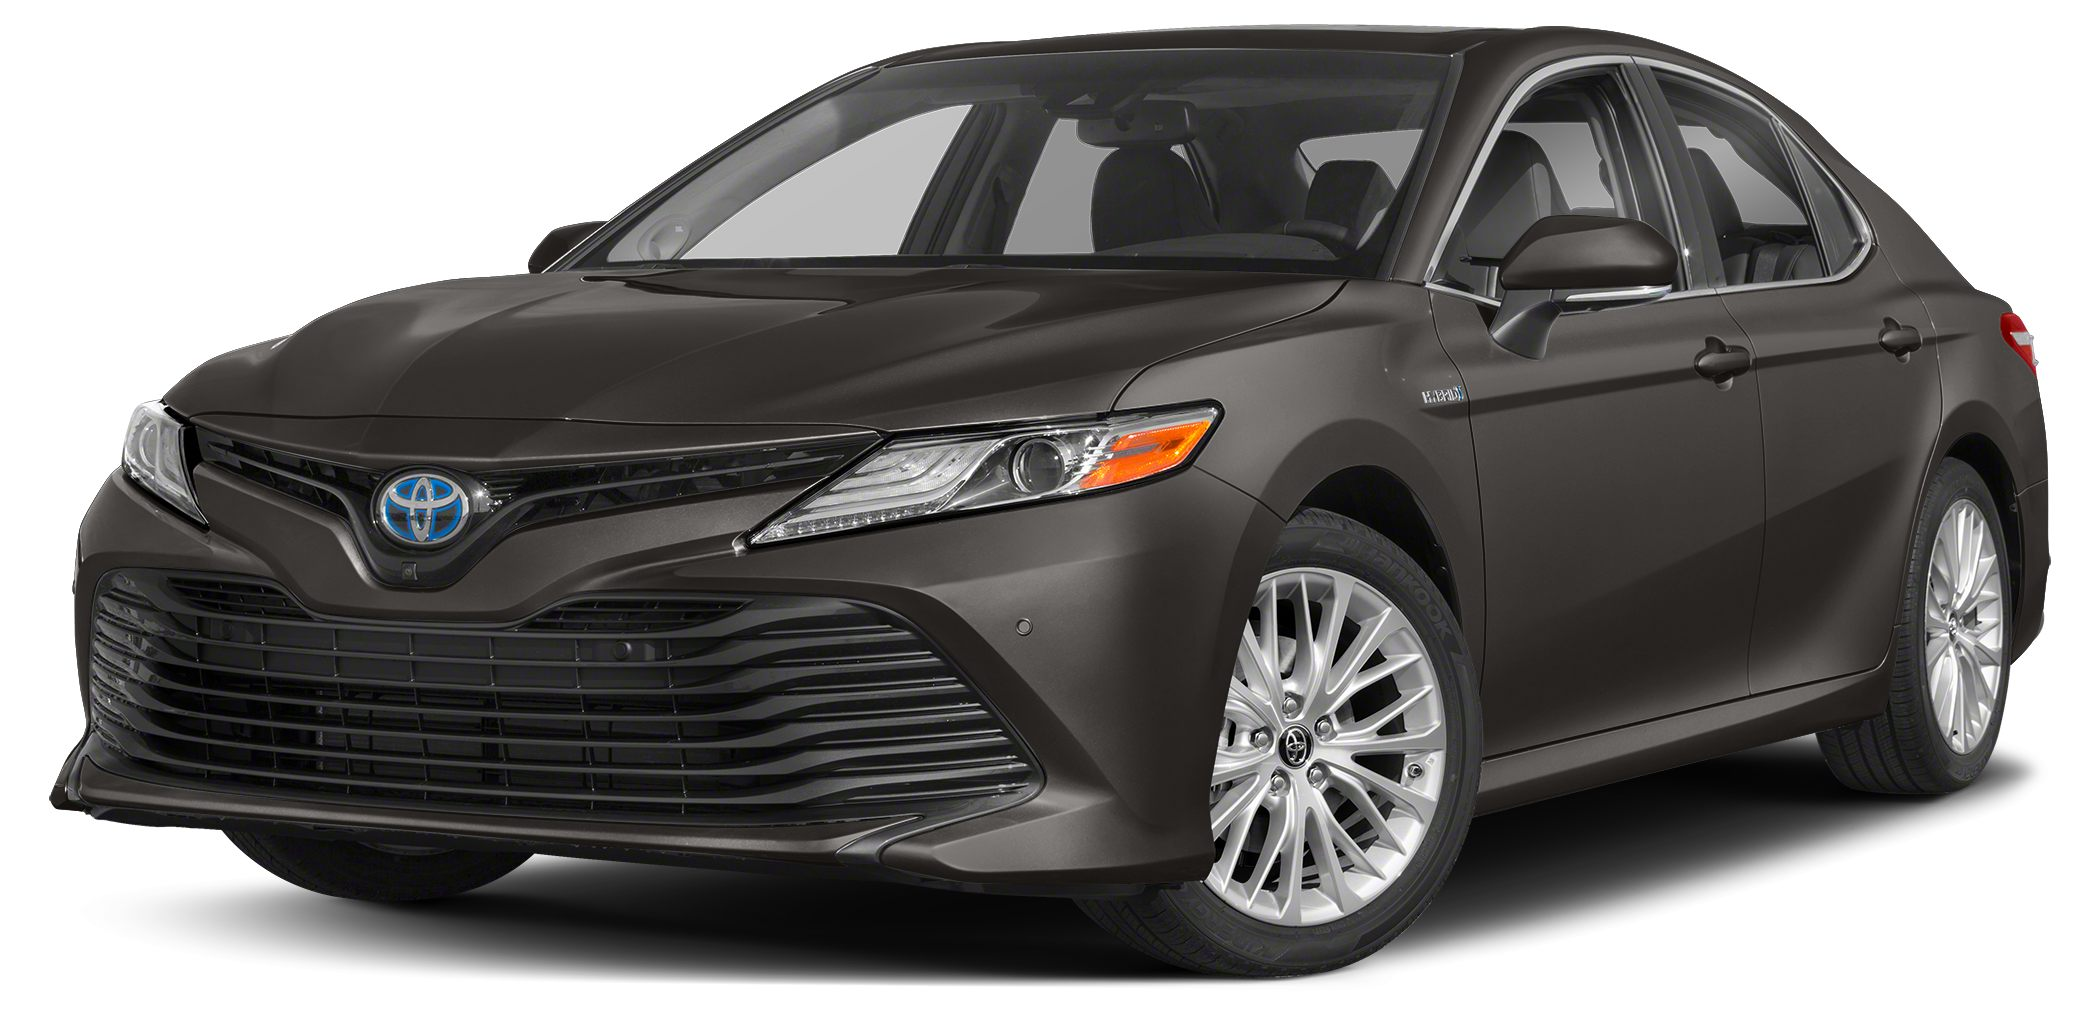 2018 Toyota Camry Hybrid XLE Heated Leather Seats Moonroof Dual Zone AC Chrome Wheels SUNROOF